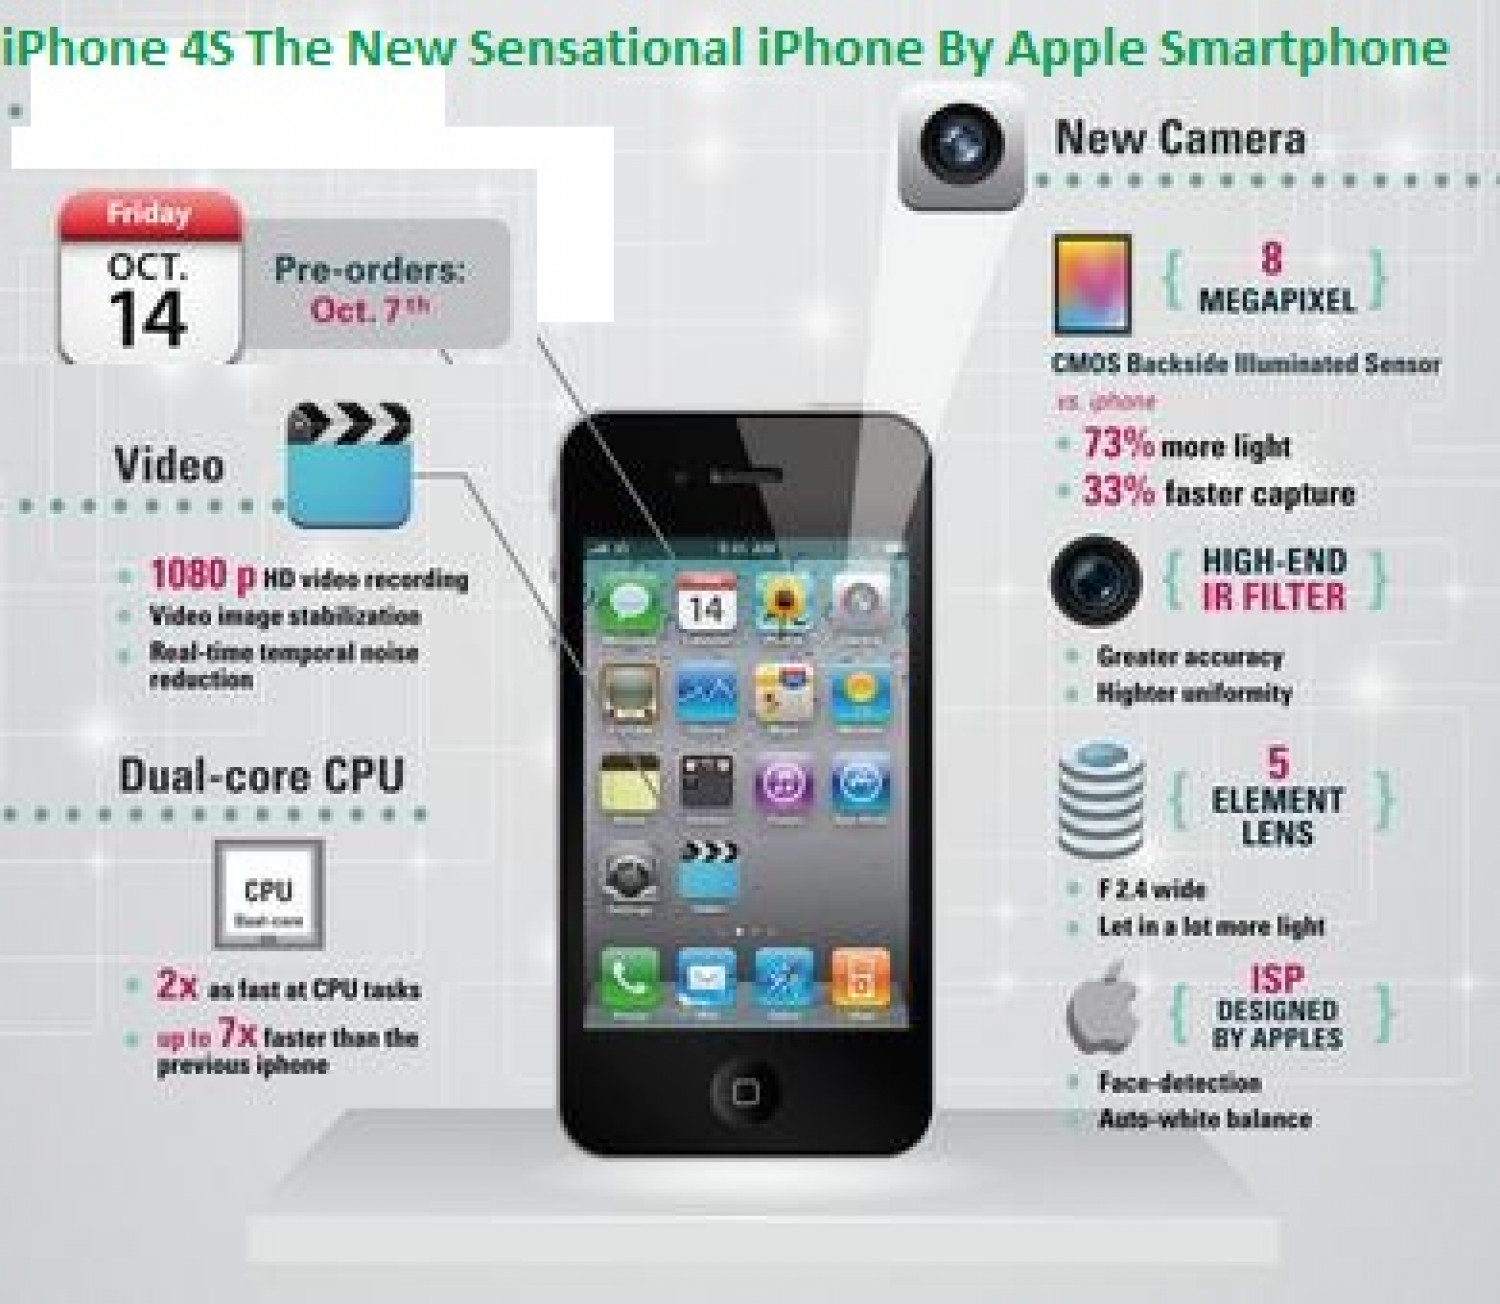 Apple iPhone 4S Infographic